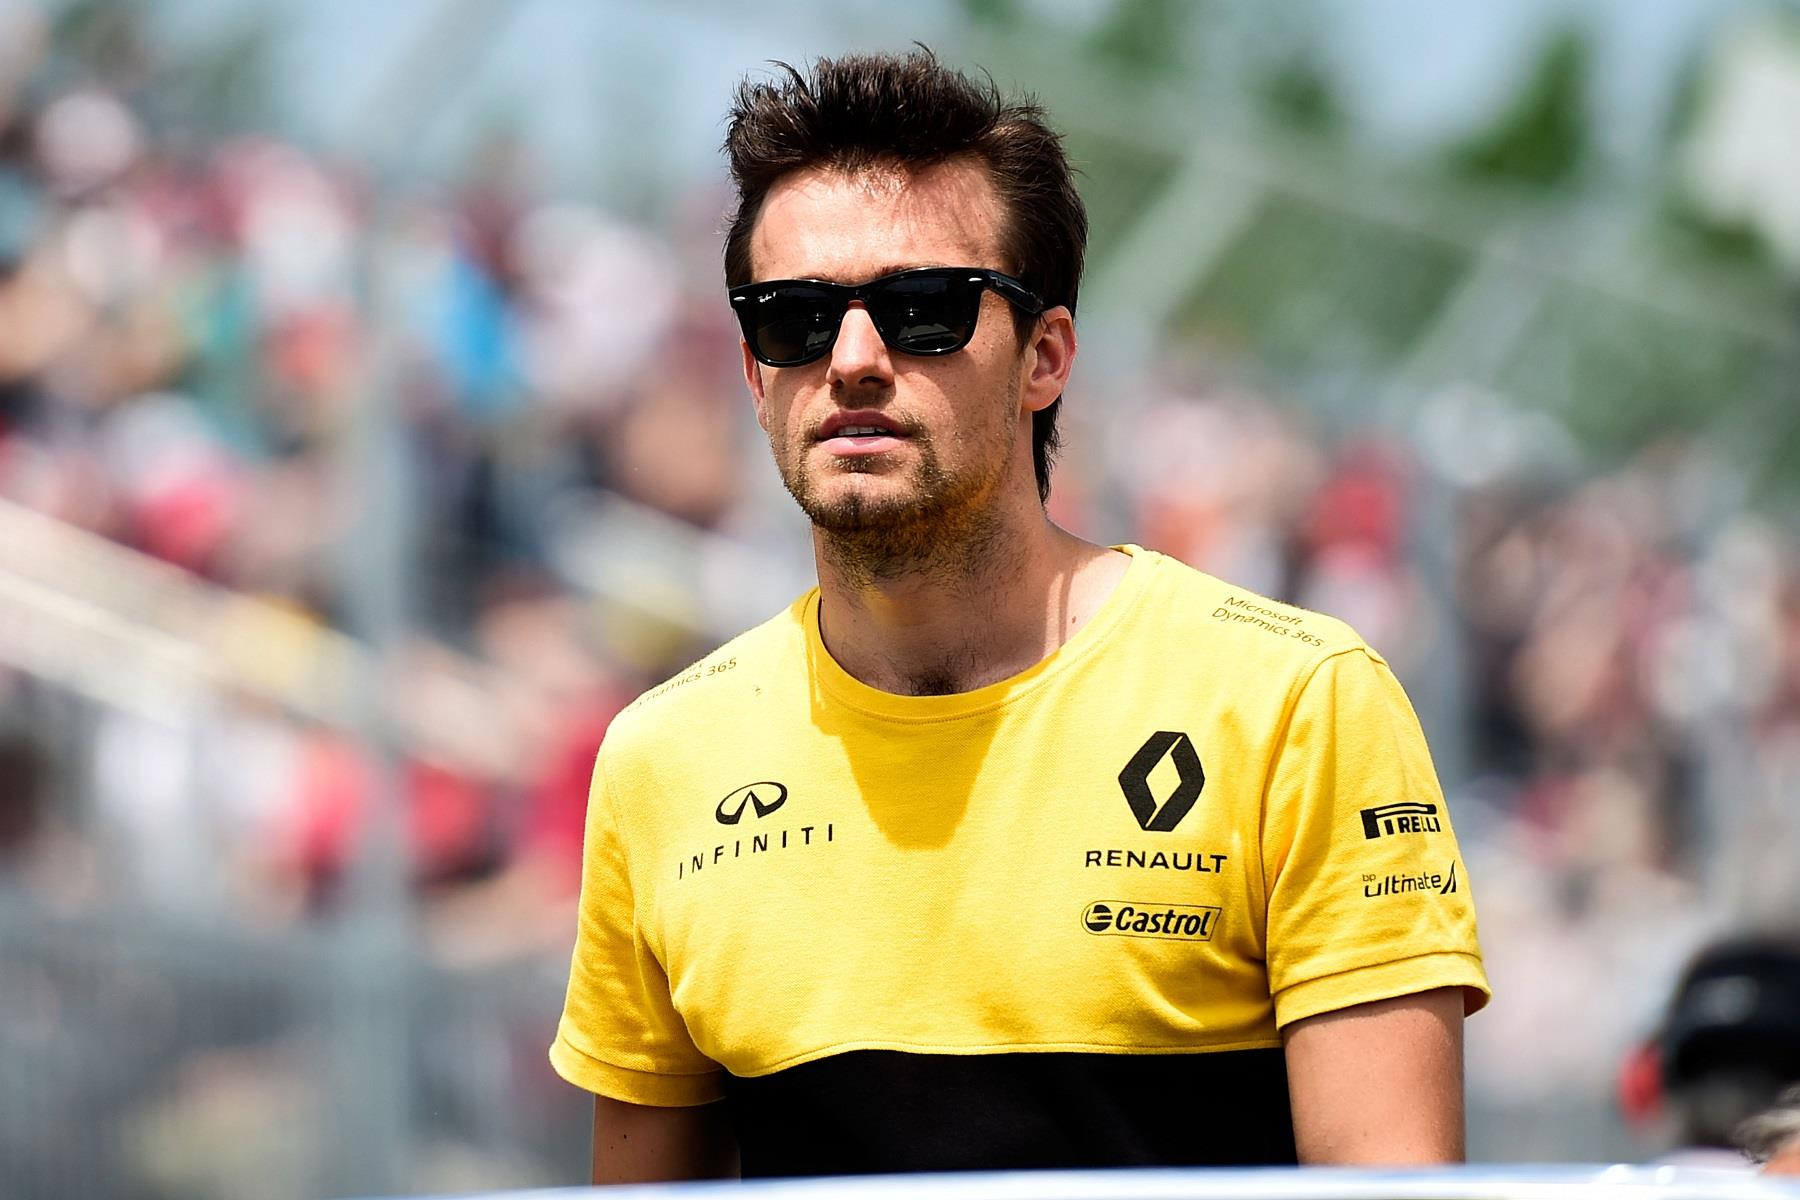 Jolyon Palmer on a parade lap.